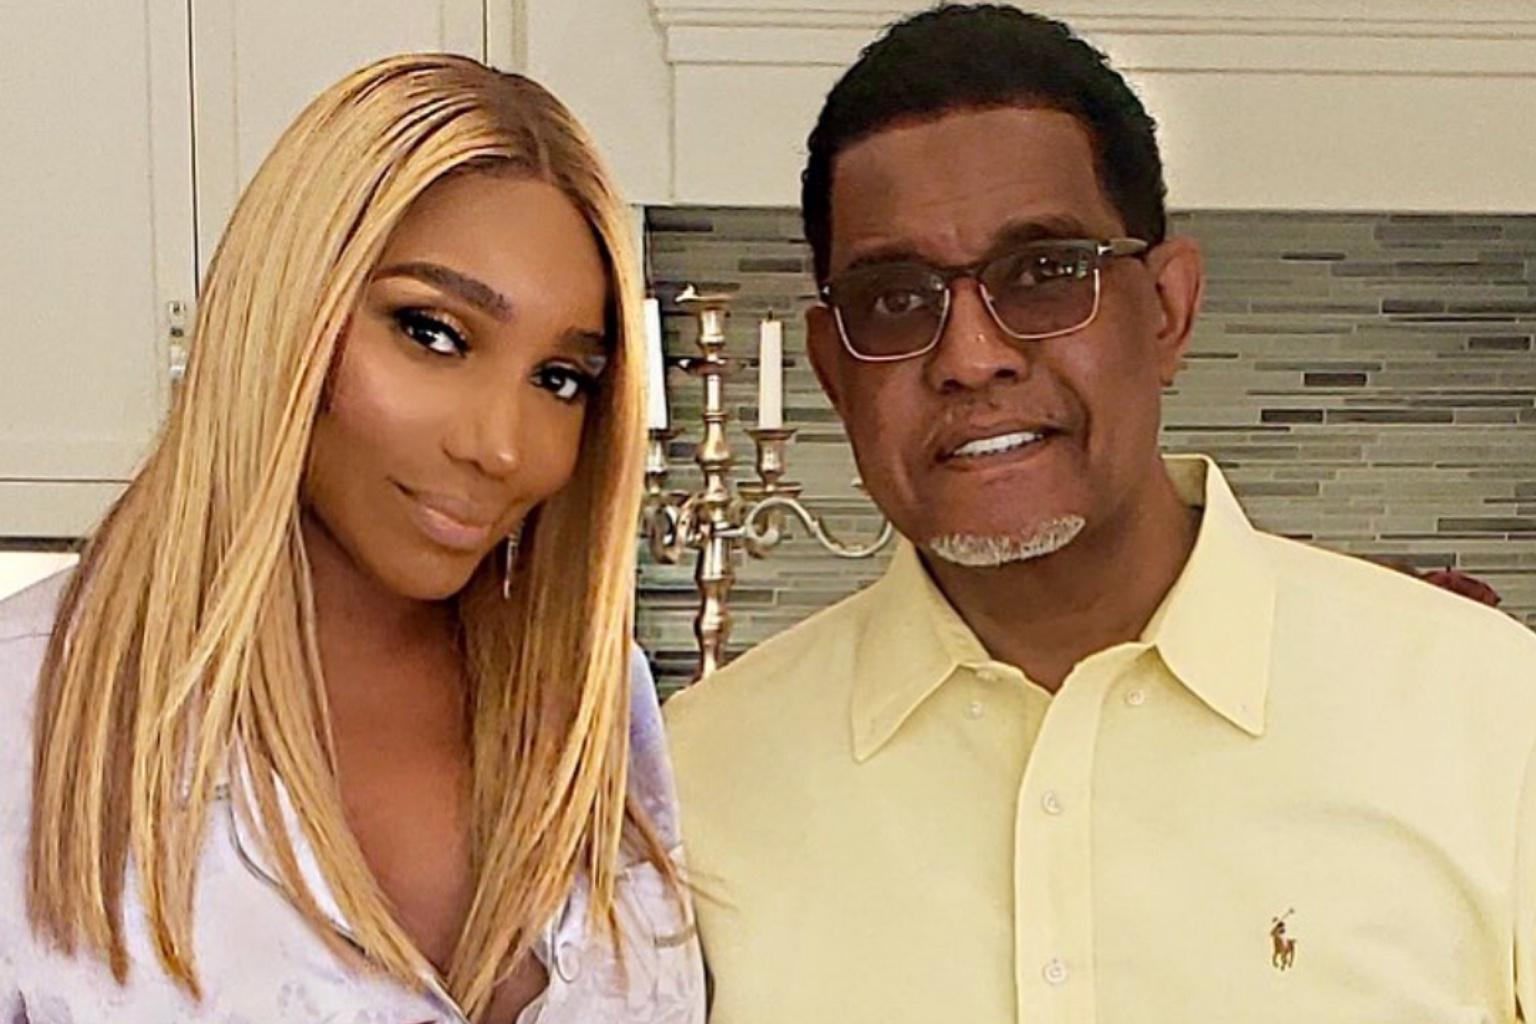 Gregg Leakes Publicly Proclaims His Love And Respect For His Wife, NeNe Leakes